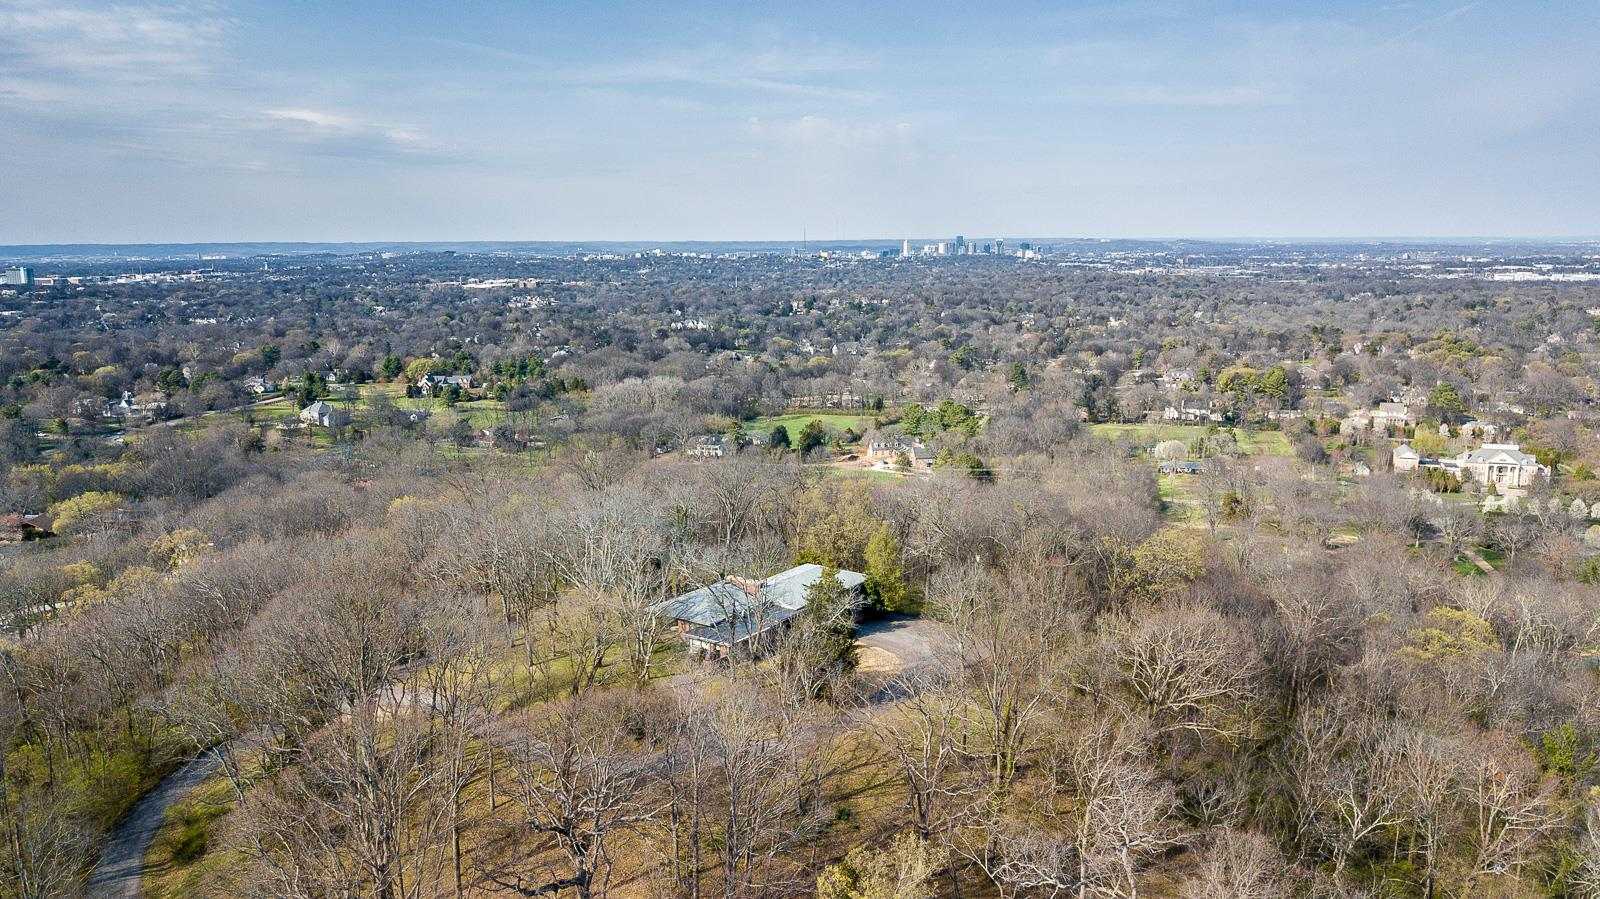 Downtown views!!! Property includes address 939 Tyne Blvd making a total of  almost 17 acres. Once in a lifetime opportunity to own an in town estate property like this one. House on property not available for viewing.